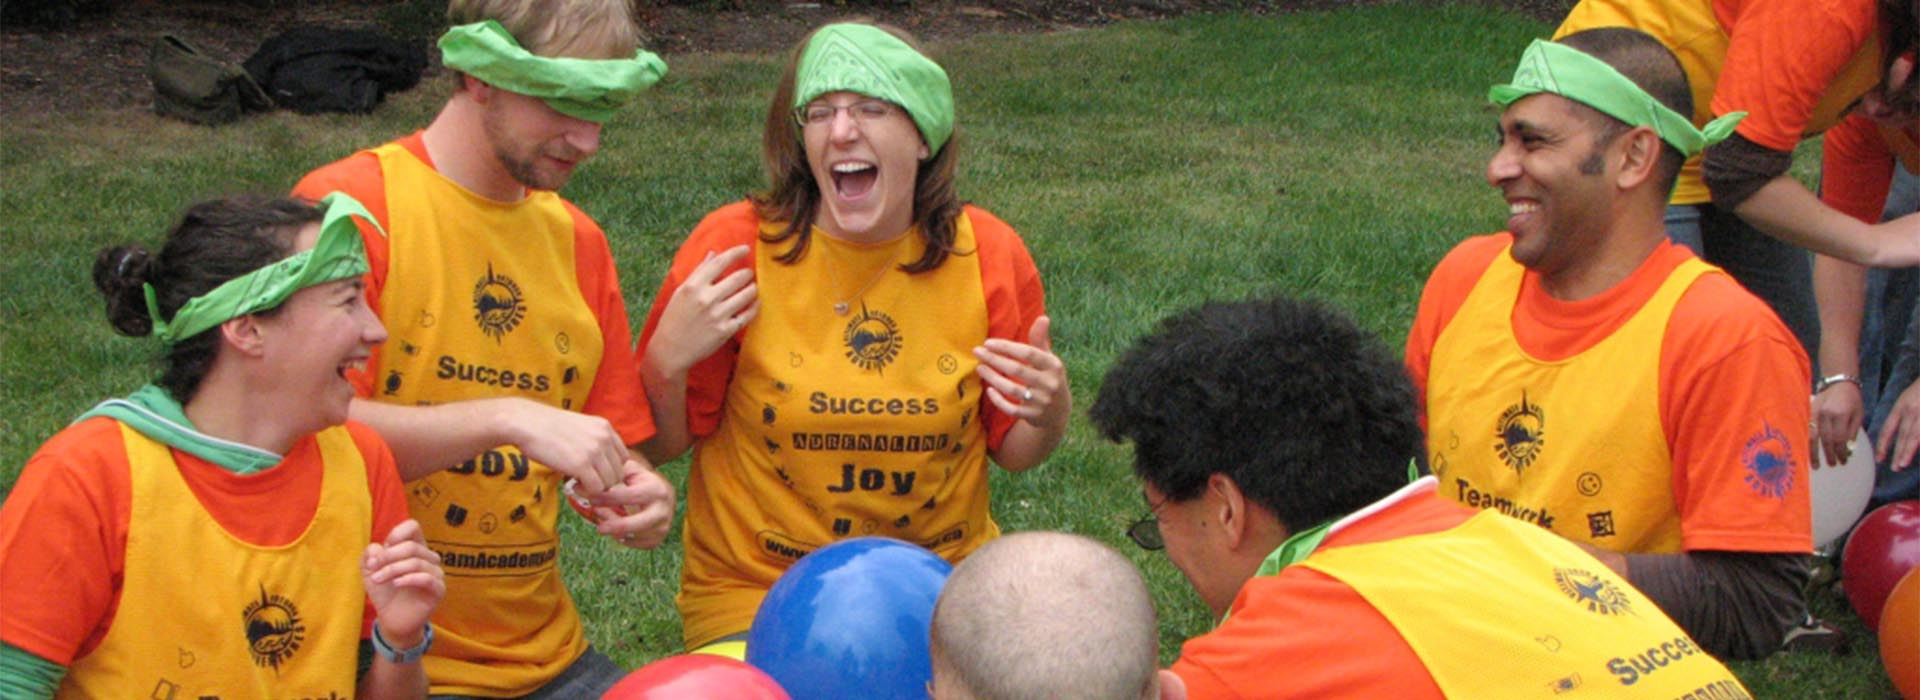 Memorable and fun moments during Team Academy events